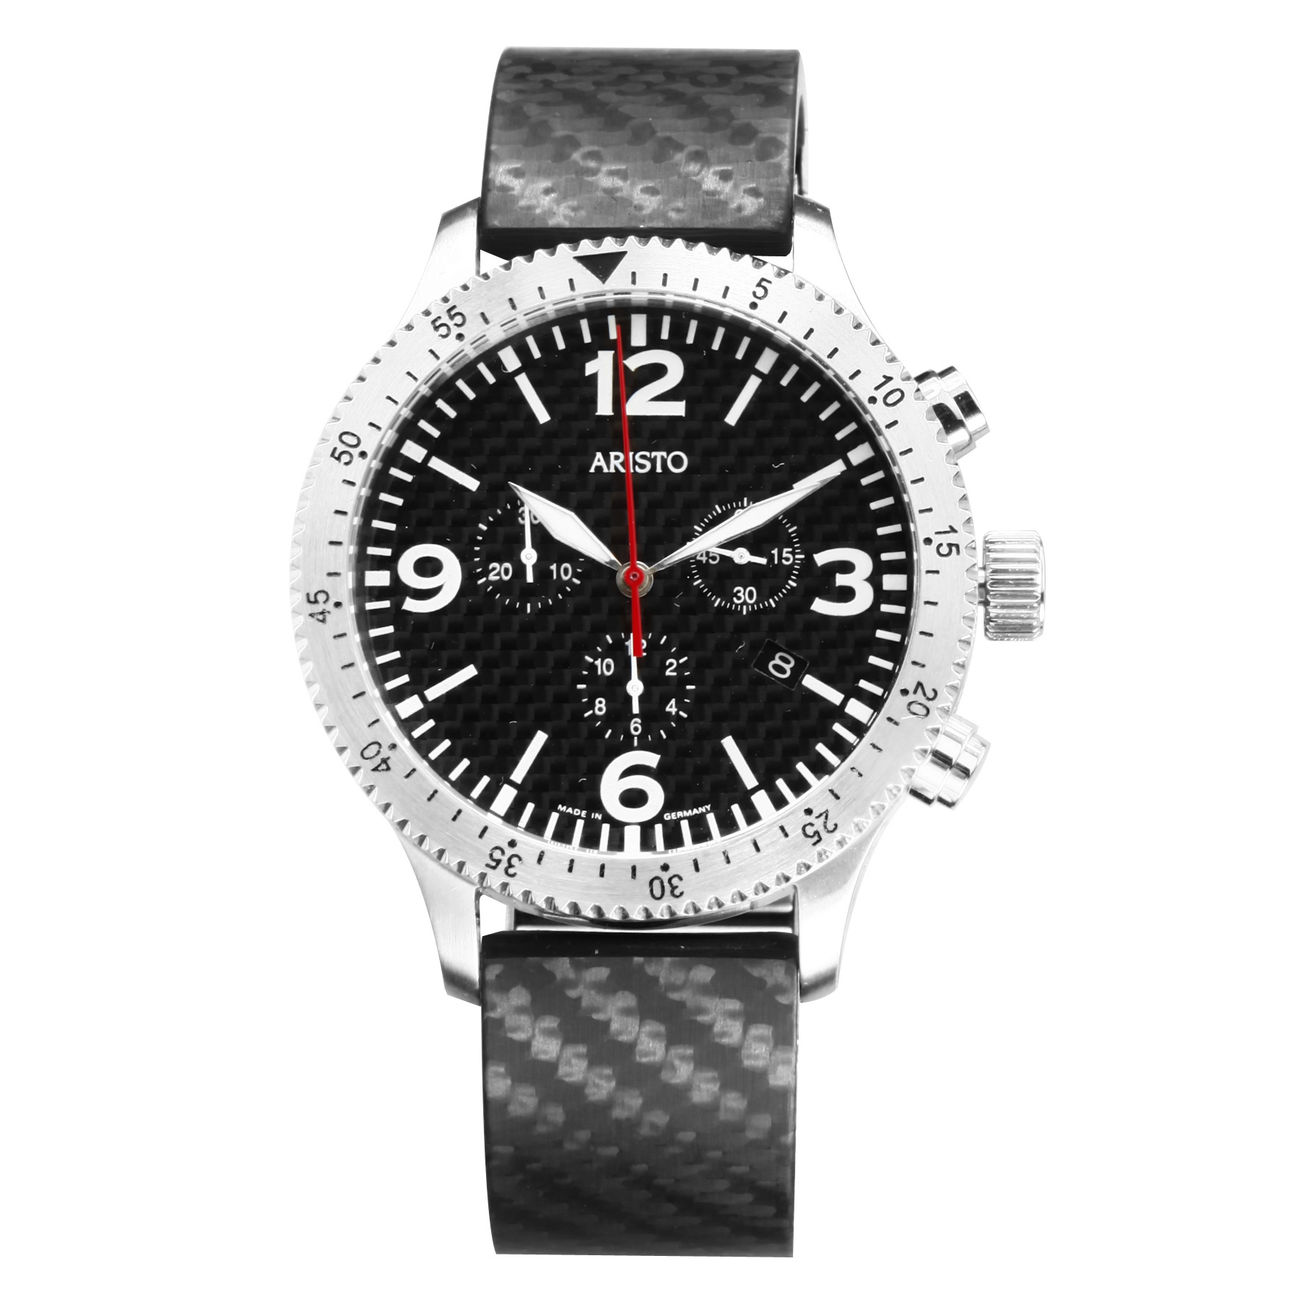 Aristo Uhr Chronograph 7H76 Carbon 0